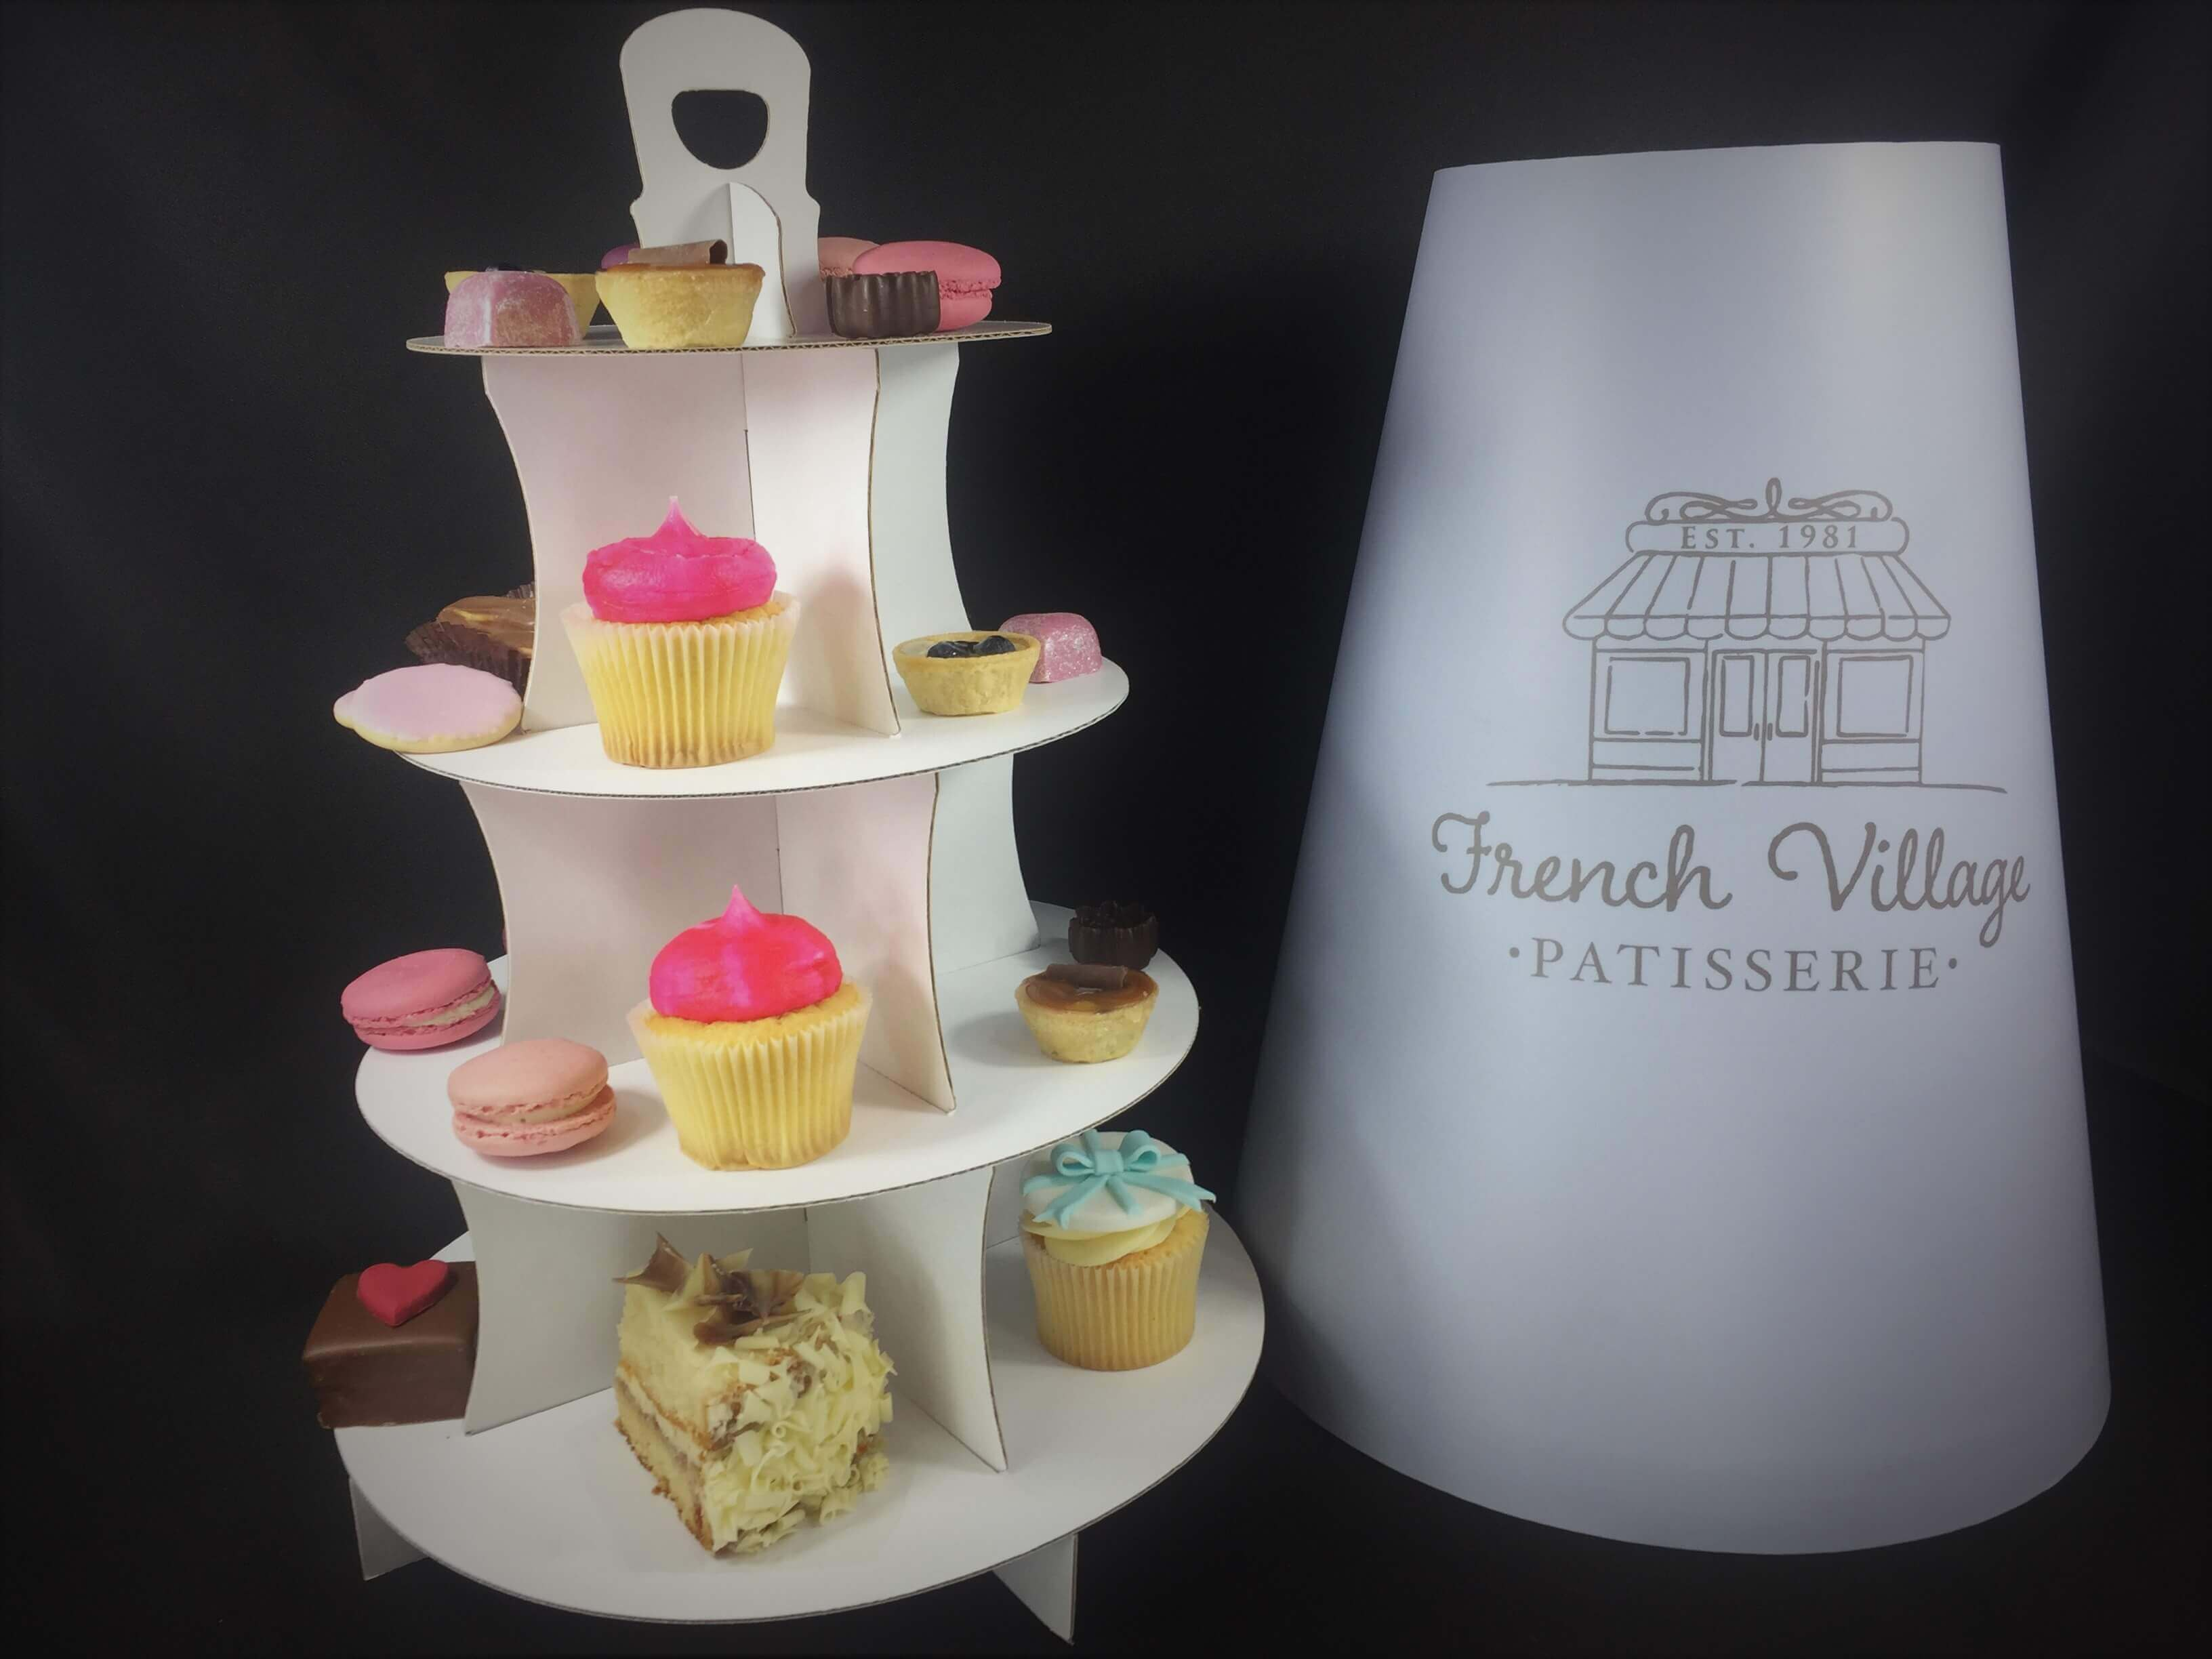 4 Tier Afternoon Tea Take Home Caddy with Bespoke Printed Hood